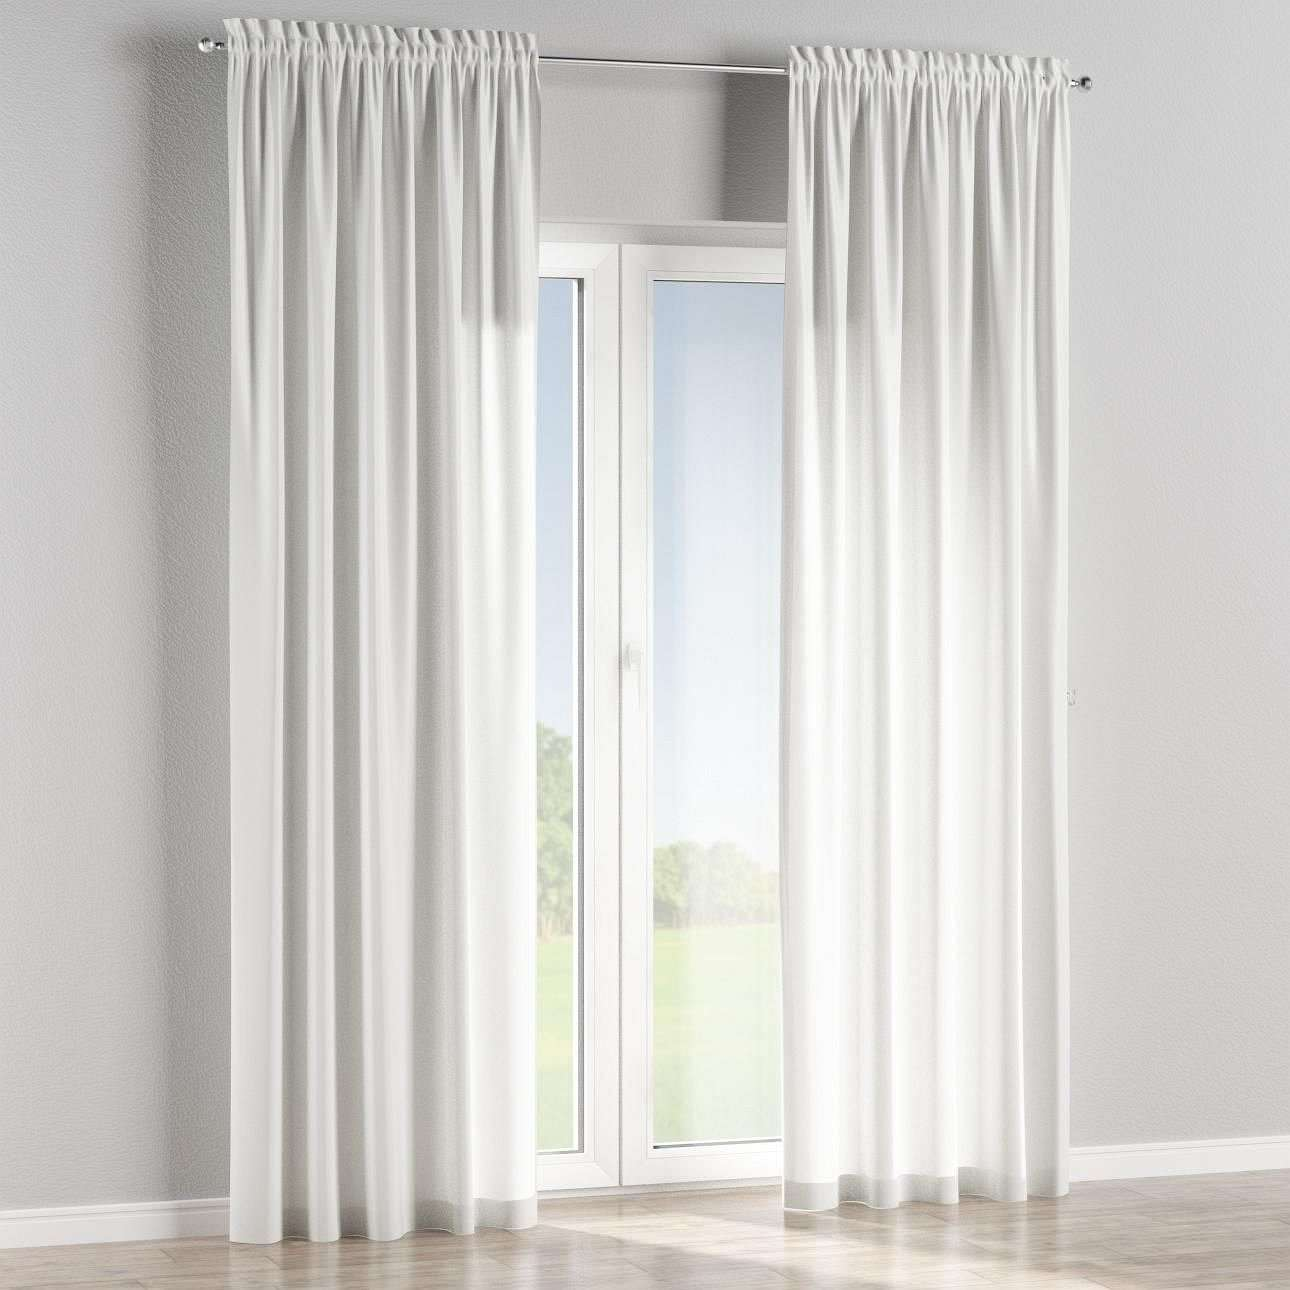 Slot and frill lined curtains in collection Ashley, fabric: 137-66